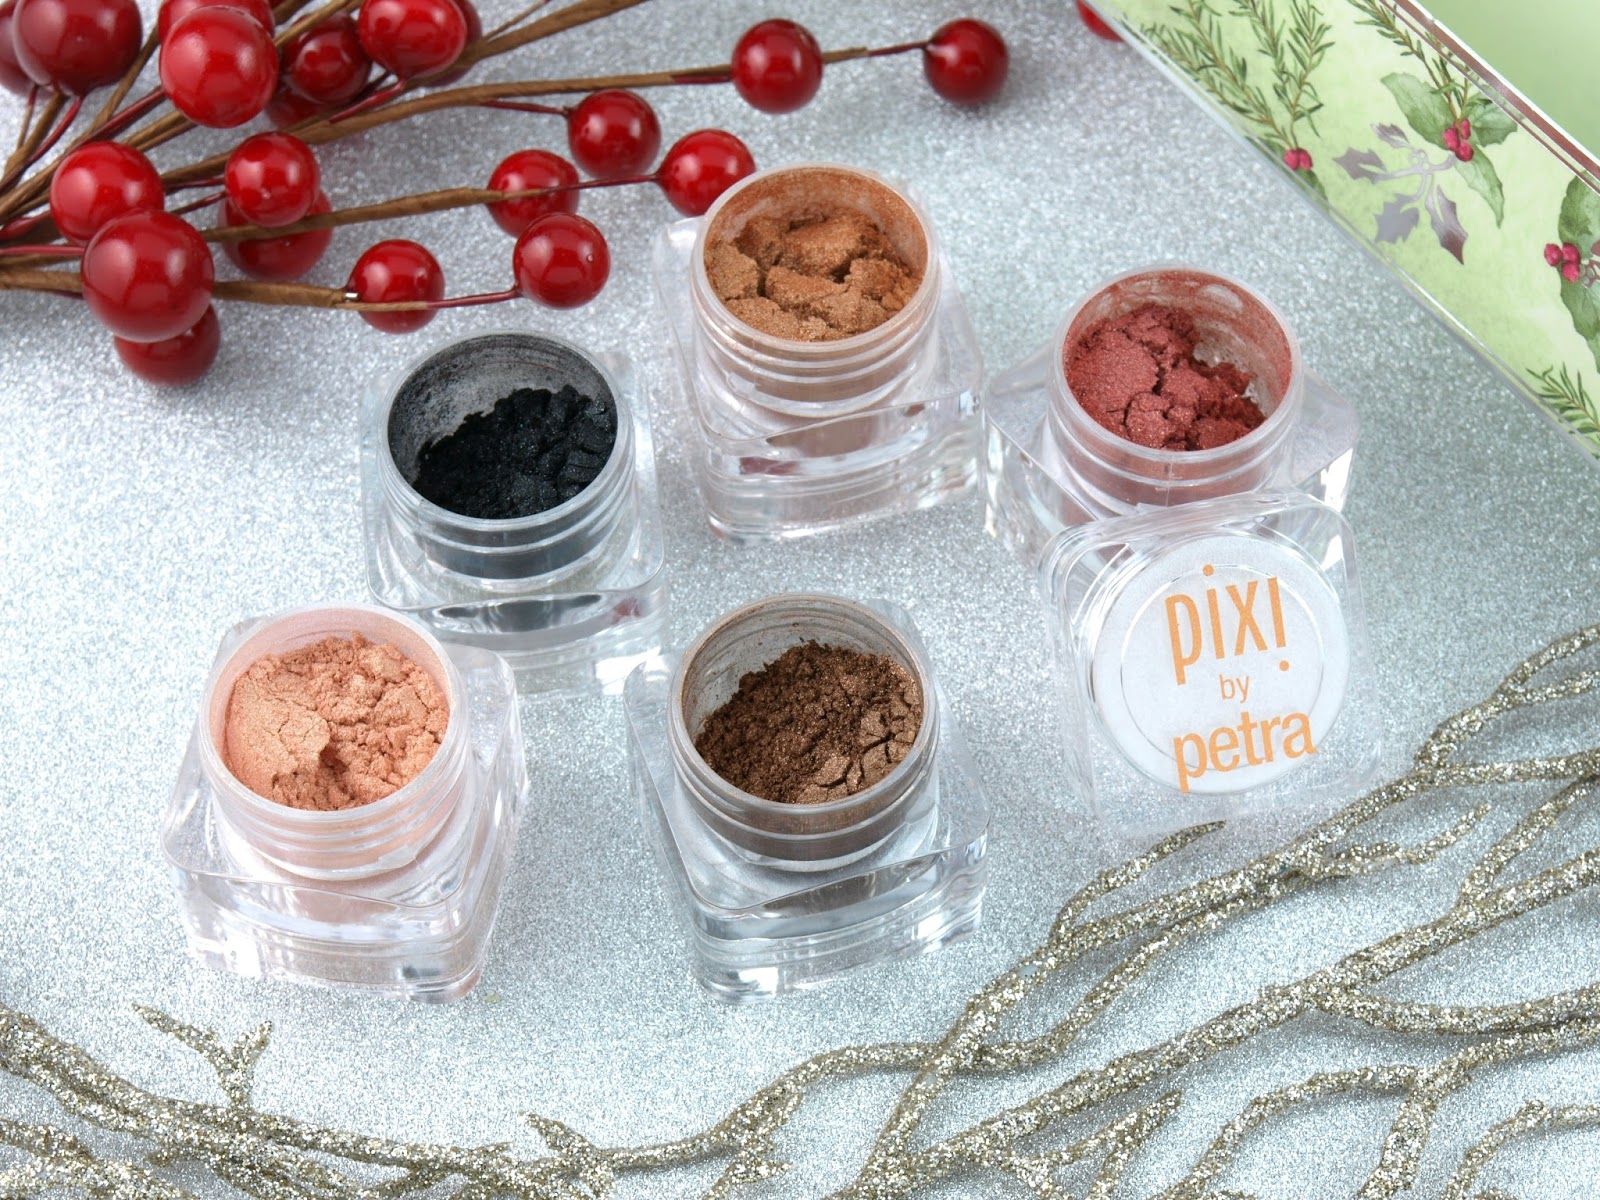 Pixi Holiday 2016 Fairy Dust Favorites: Review and Swatches